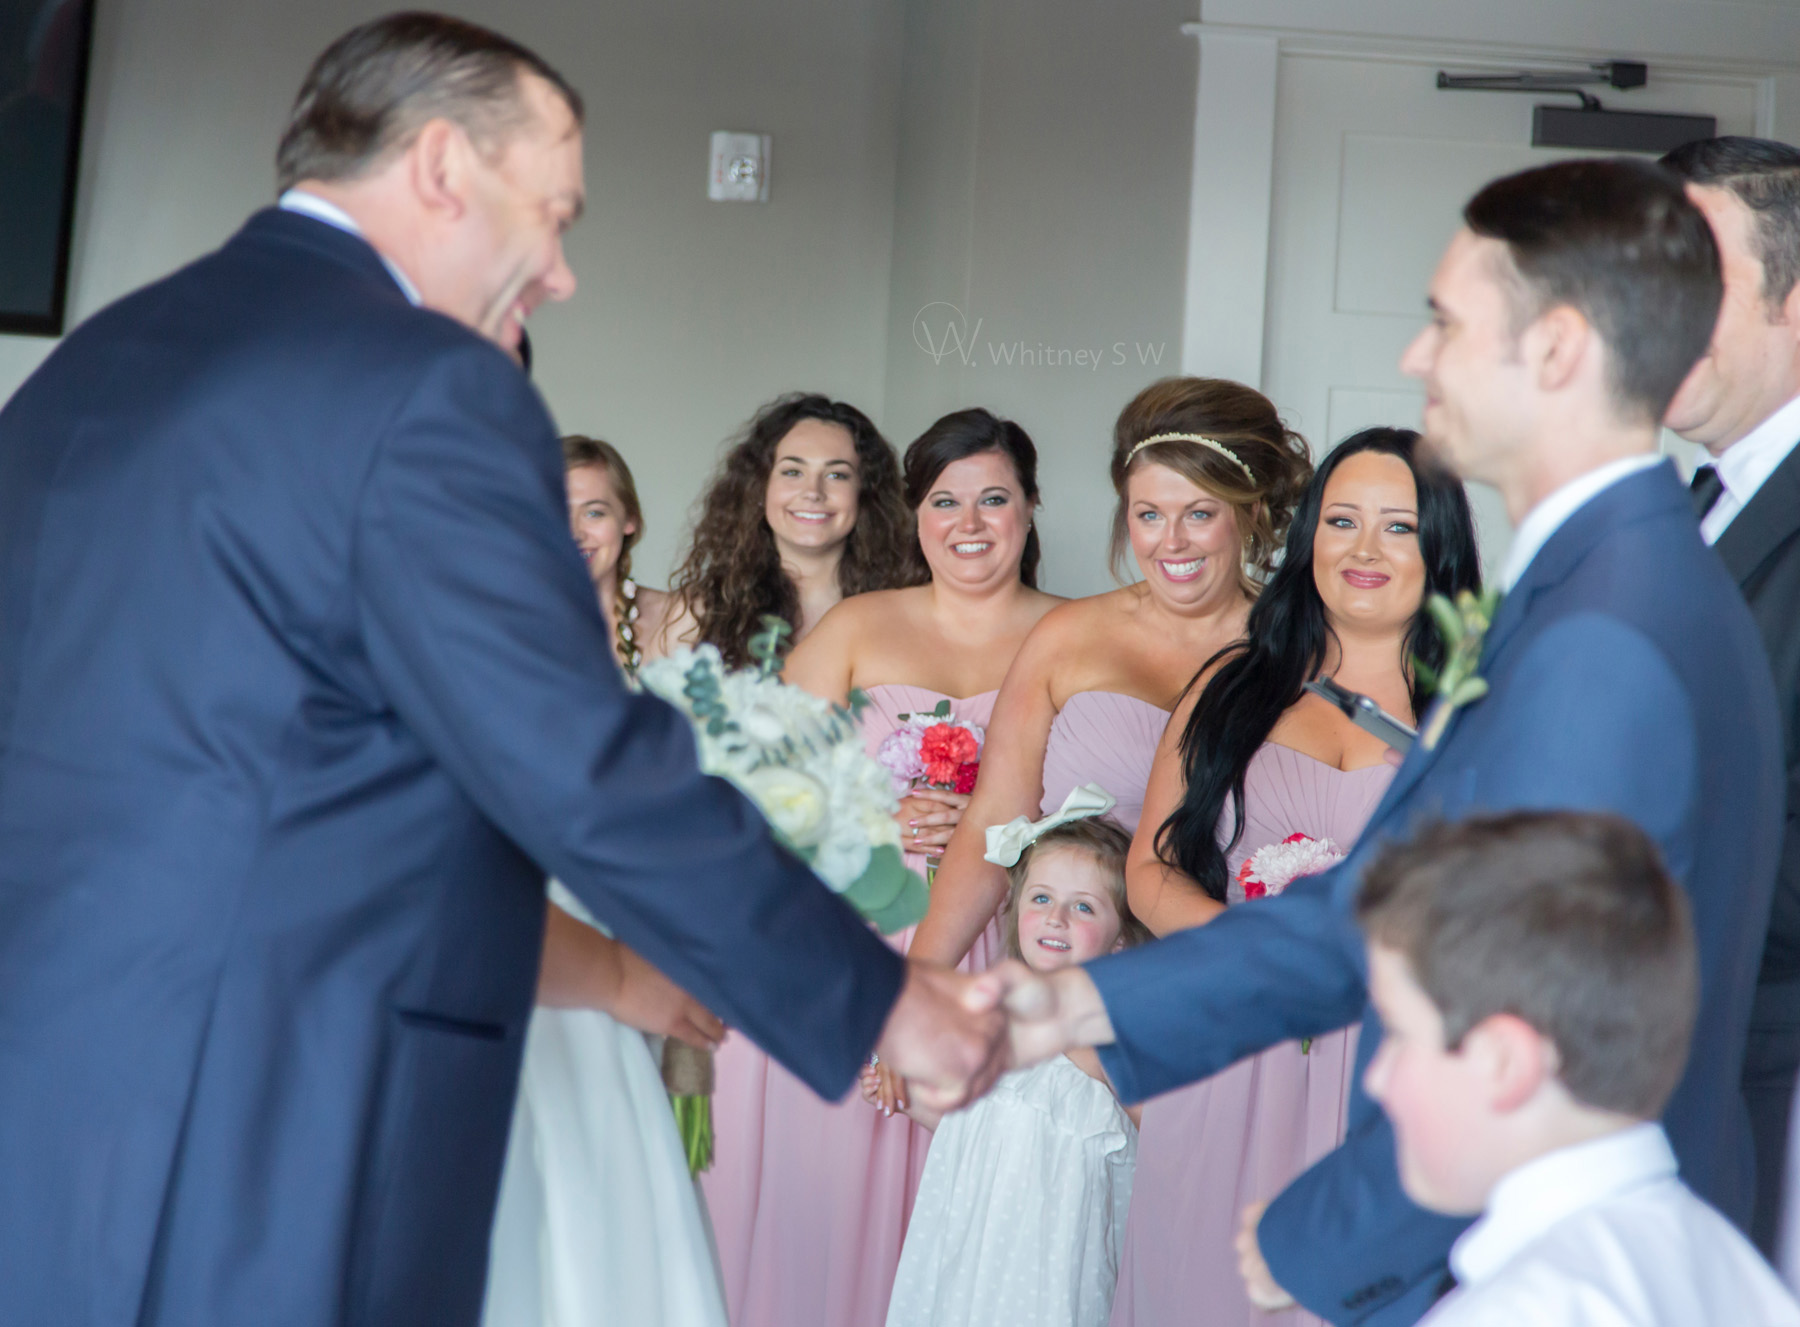 SimpsonFalinWedding_Photography by Whitney S Williams (136).jpg